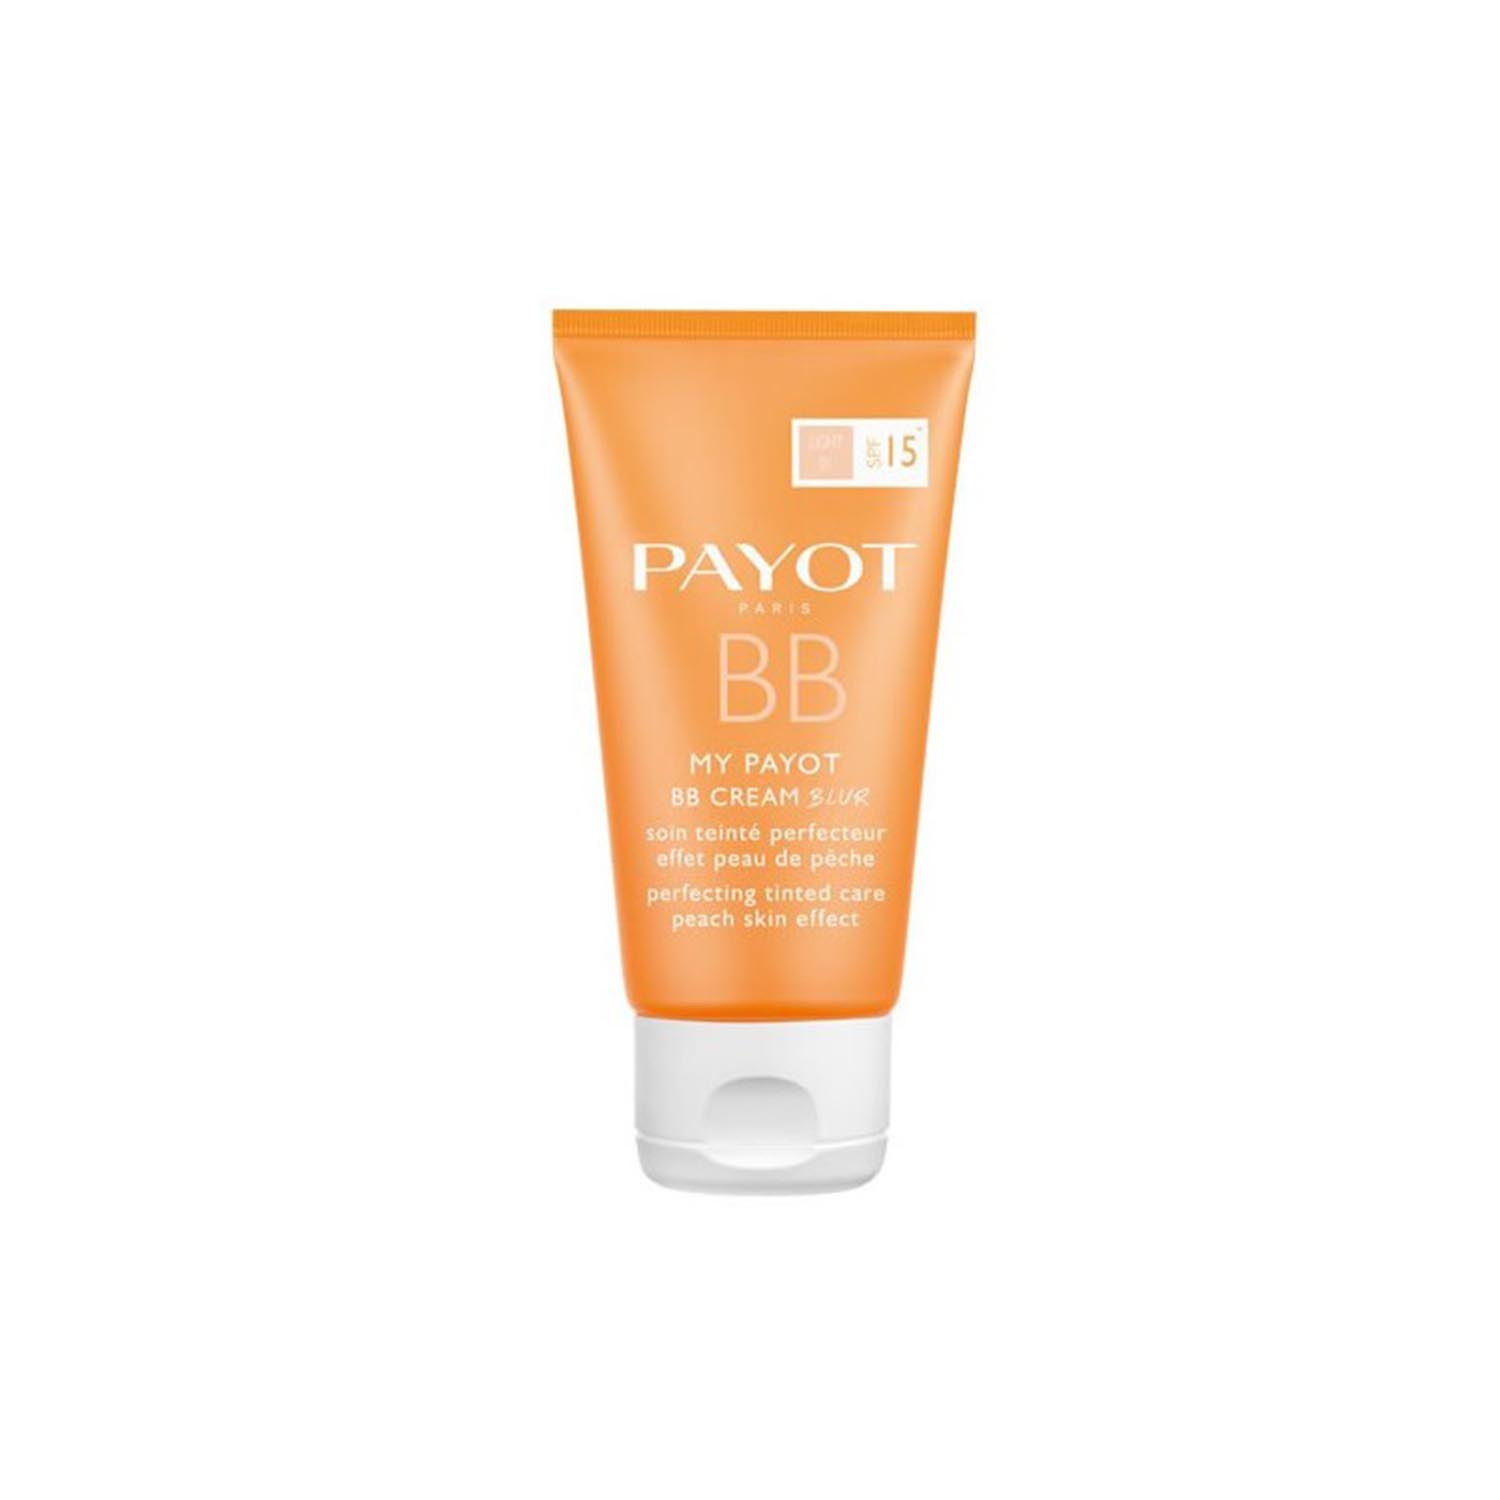 Payot my payot bb cream blur 50ml 01 light